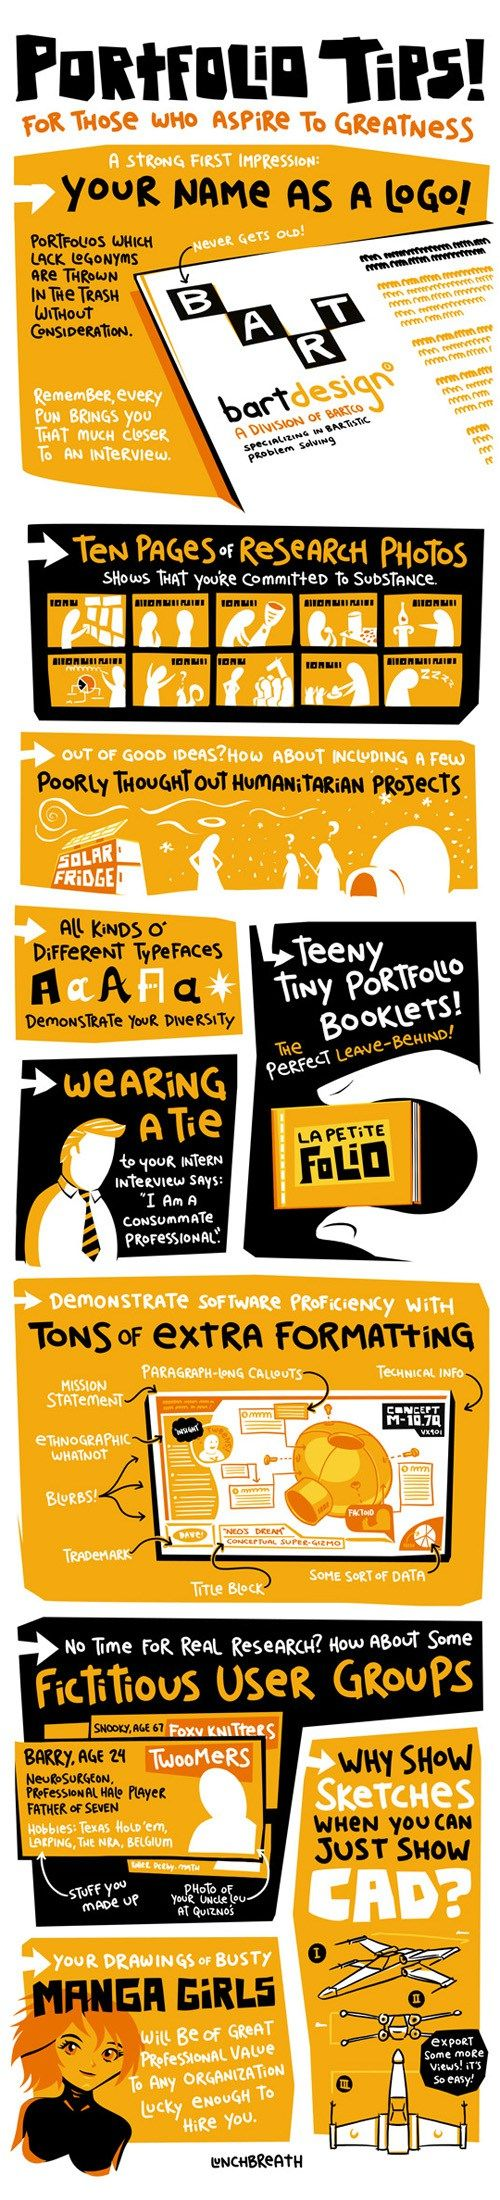 UCreative.com - 35 Cool Infographics for Web and Graphic Designers | UCreative.com